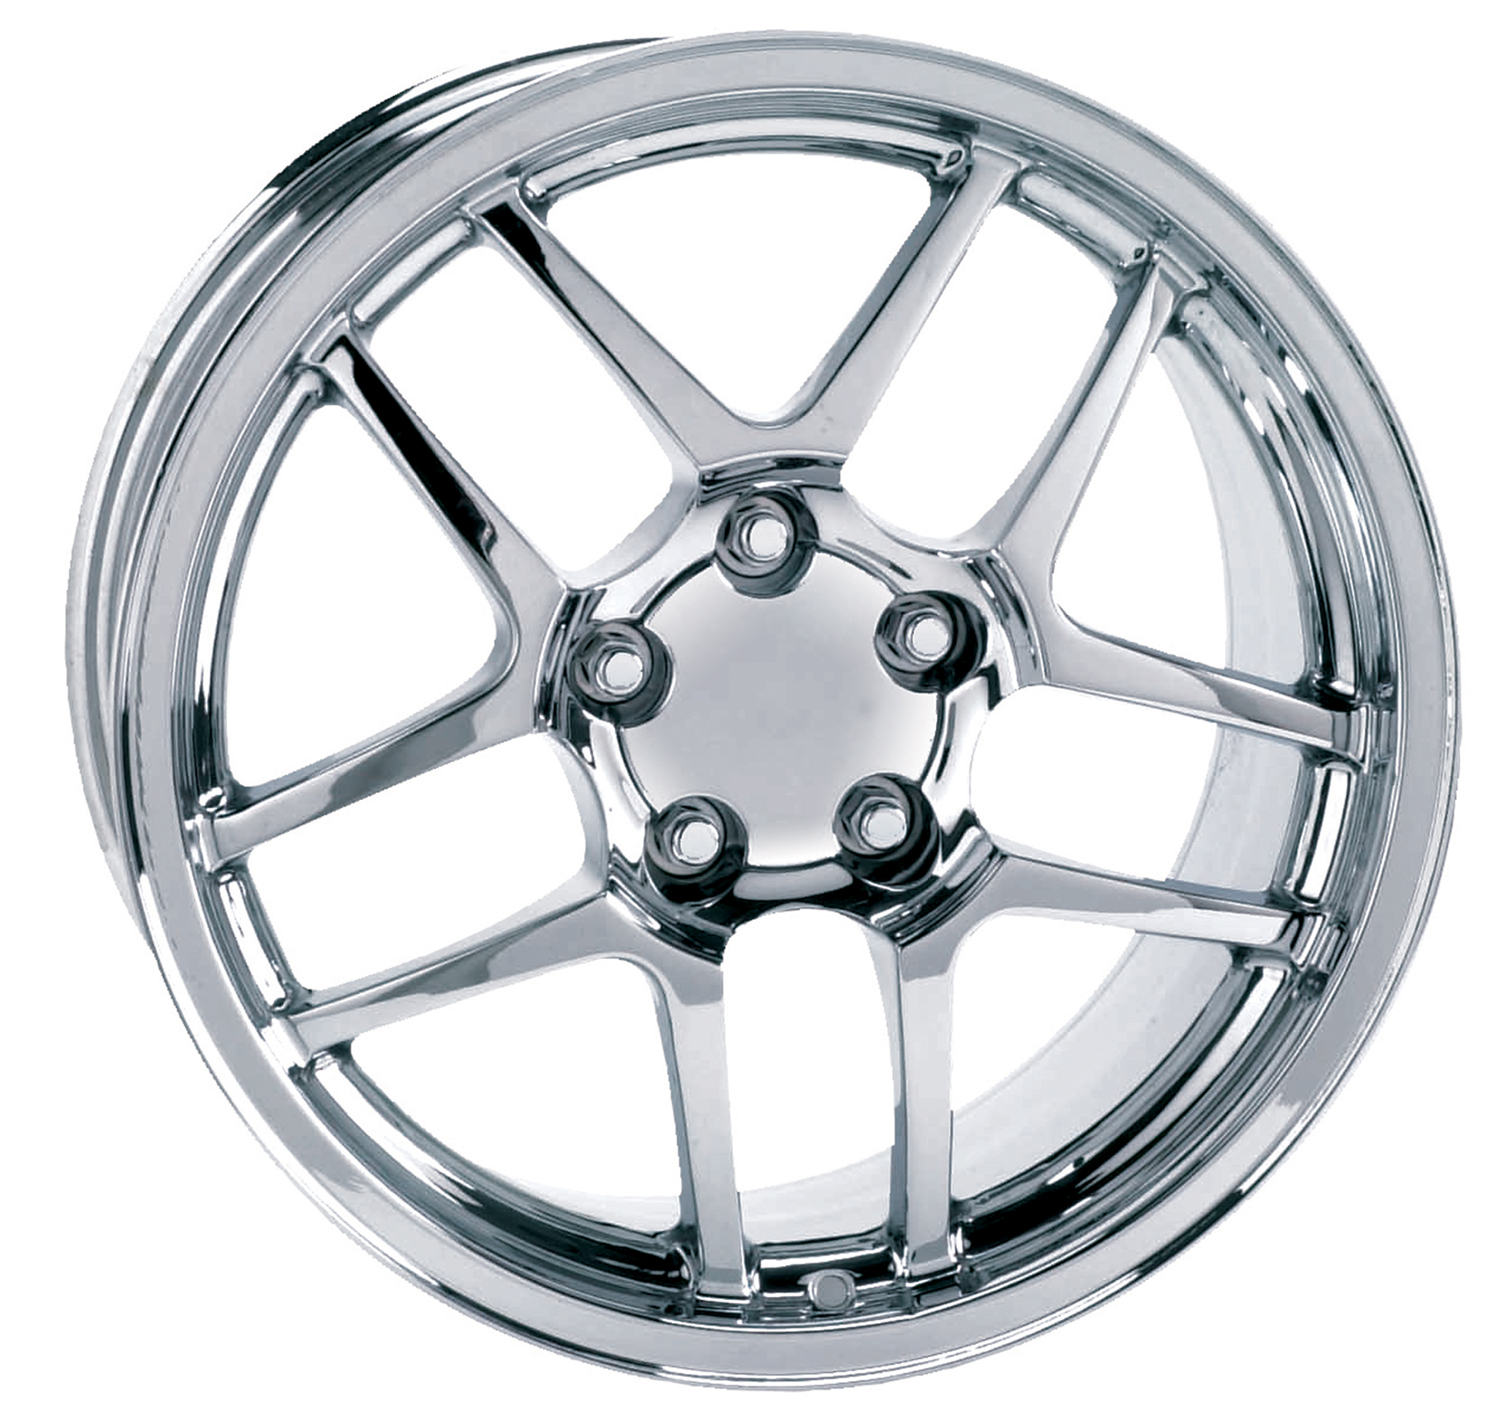 Chevrolet Corvette 1997-2004 17x8.5 5x4.75 +56 -C5 Z06 Style Wheel - Chrome With Cap